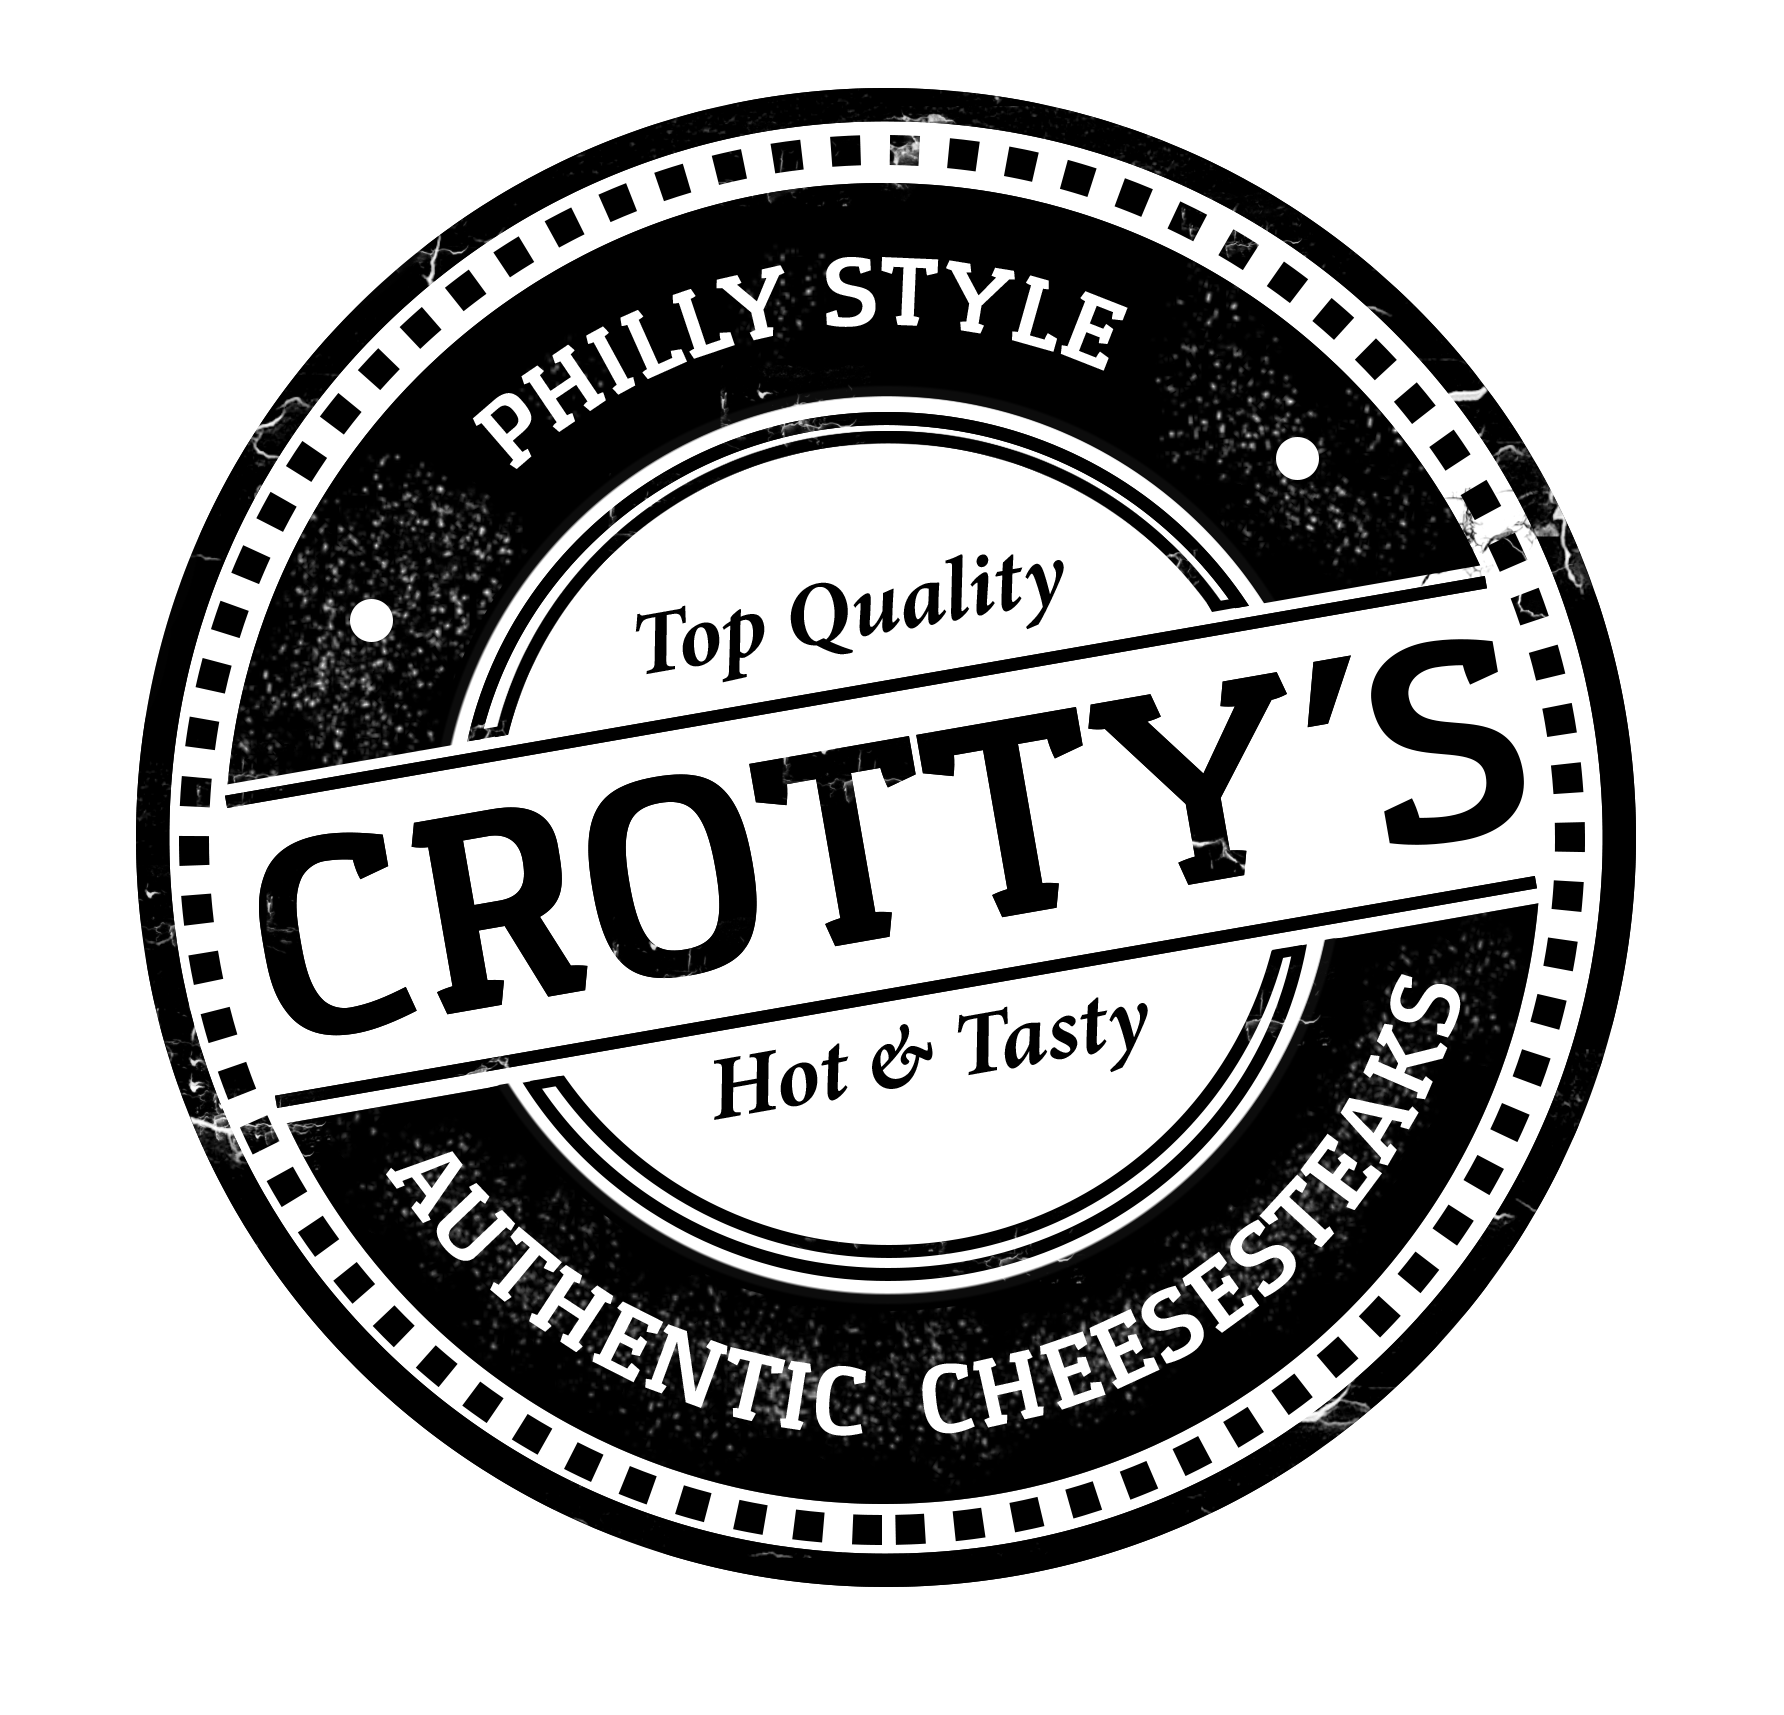 Crotty's Cheesesteaks